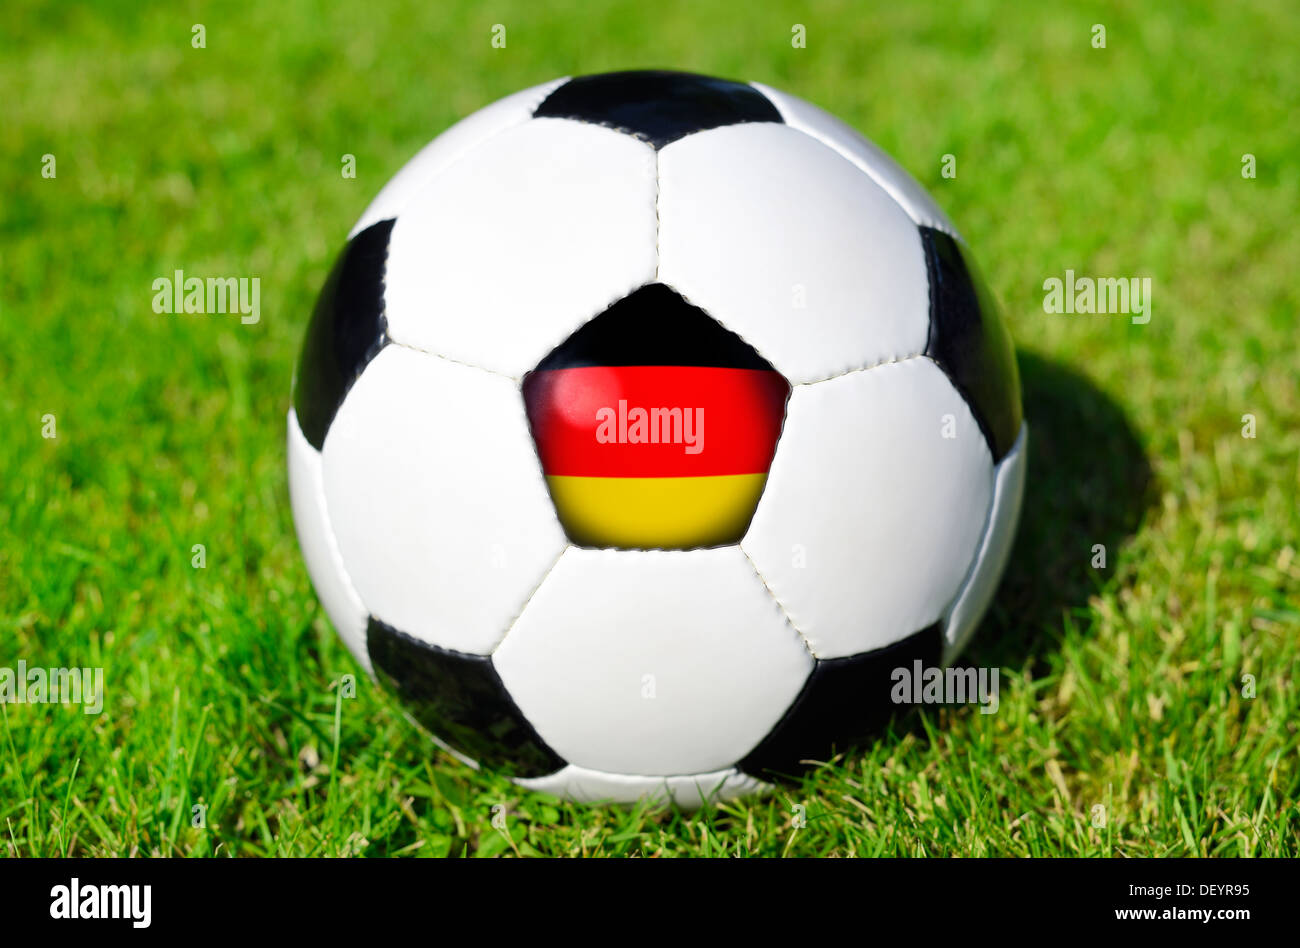 Black-and-white football with Germany flag, Schwarz-weißer Fußball mit Deutschlandfahne Stock Photo